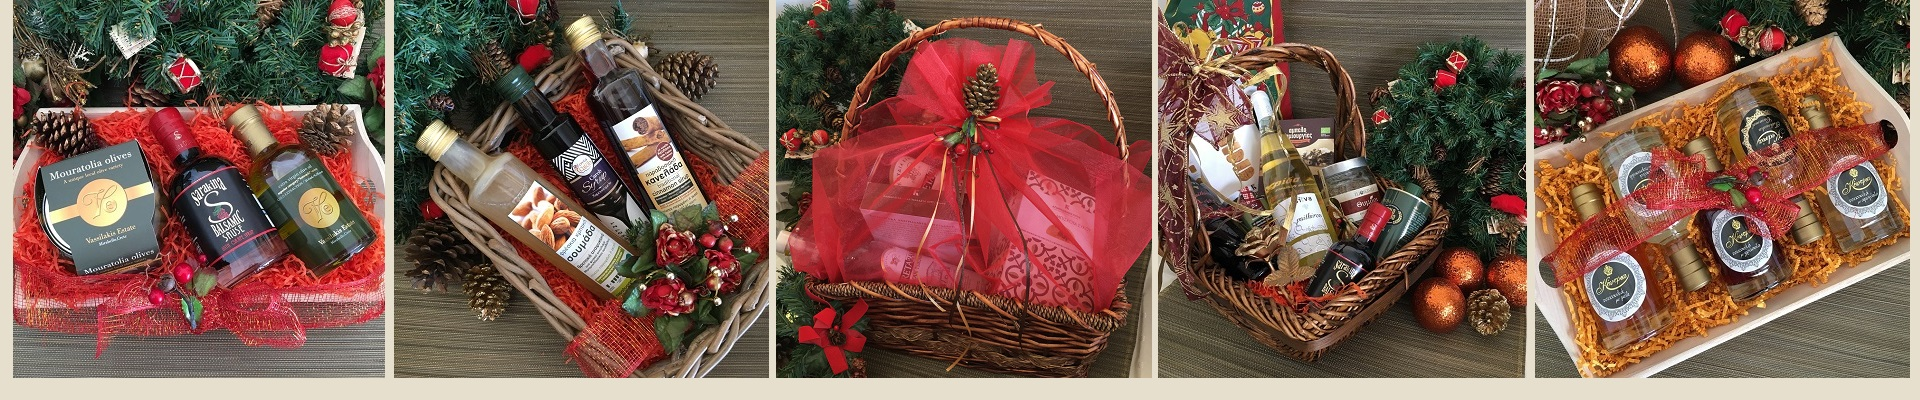 Christmas Gift Baskets with Cretan goods